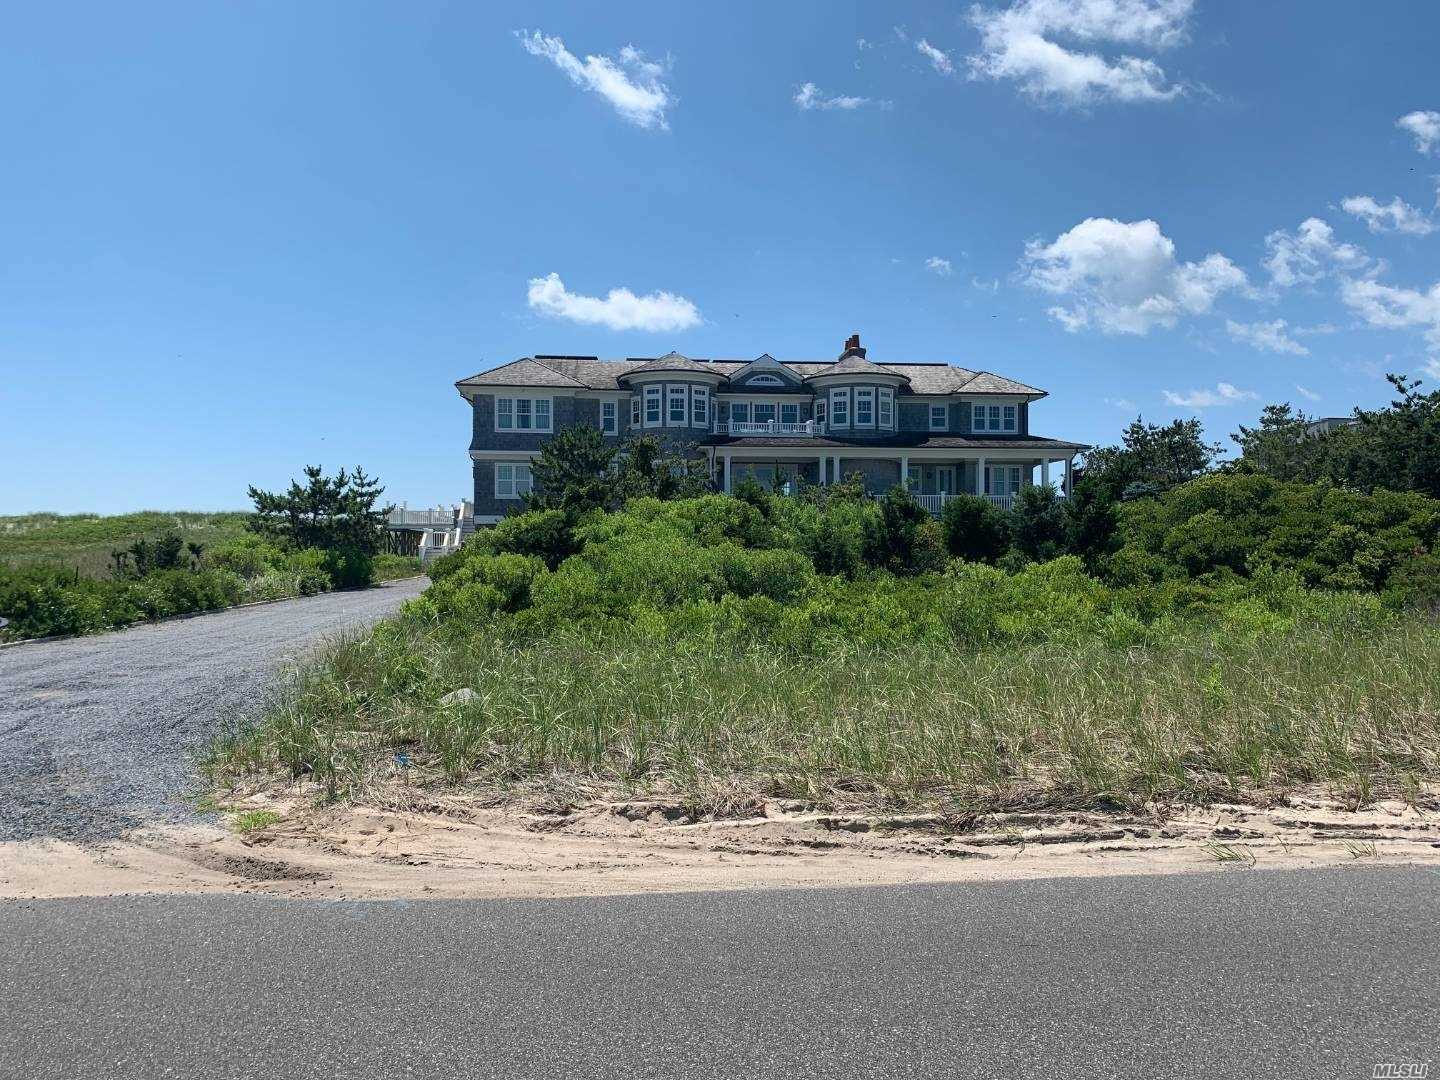 Photo of 19 Dune Road, E. Quogue NY 11942, E. Quogue, NY 11942